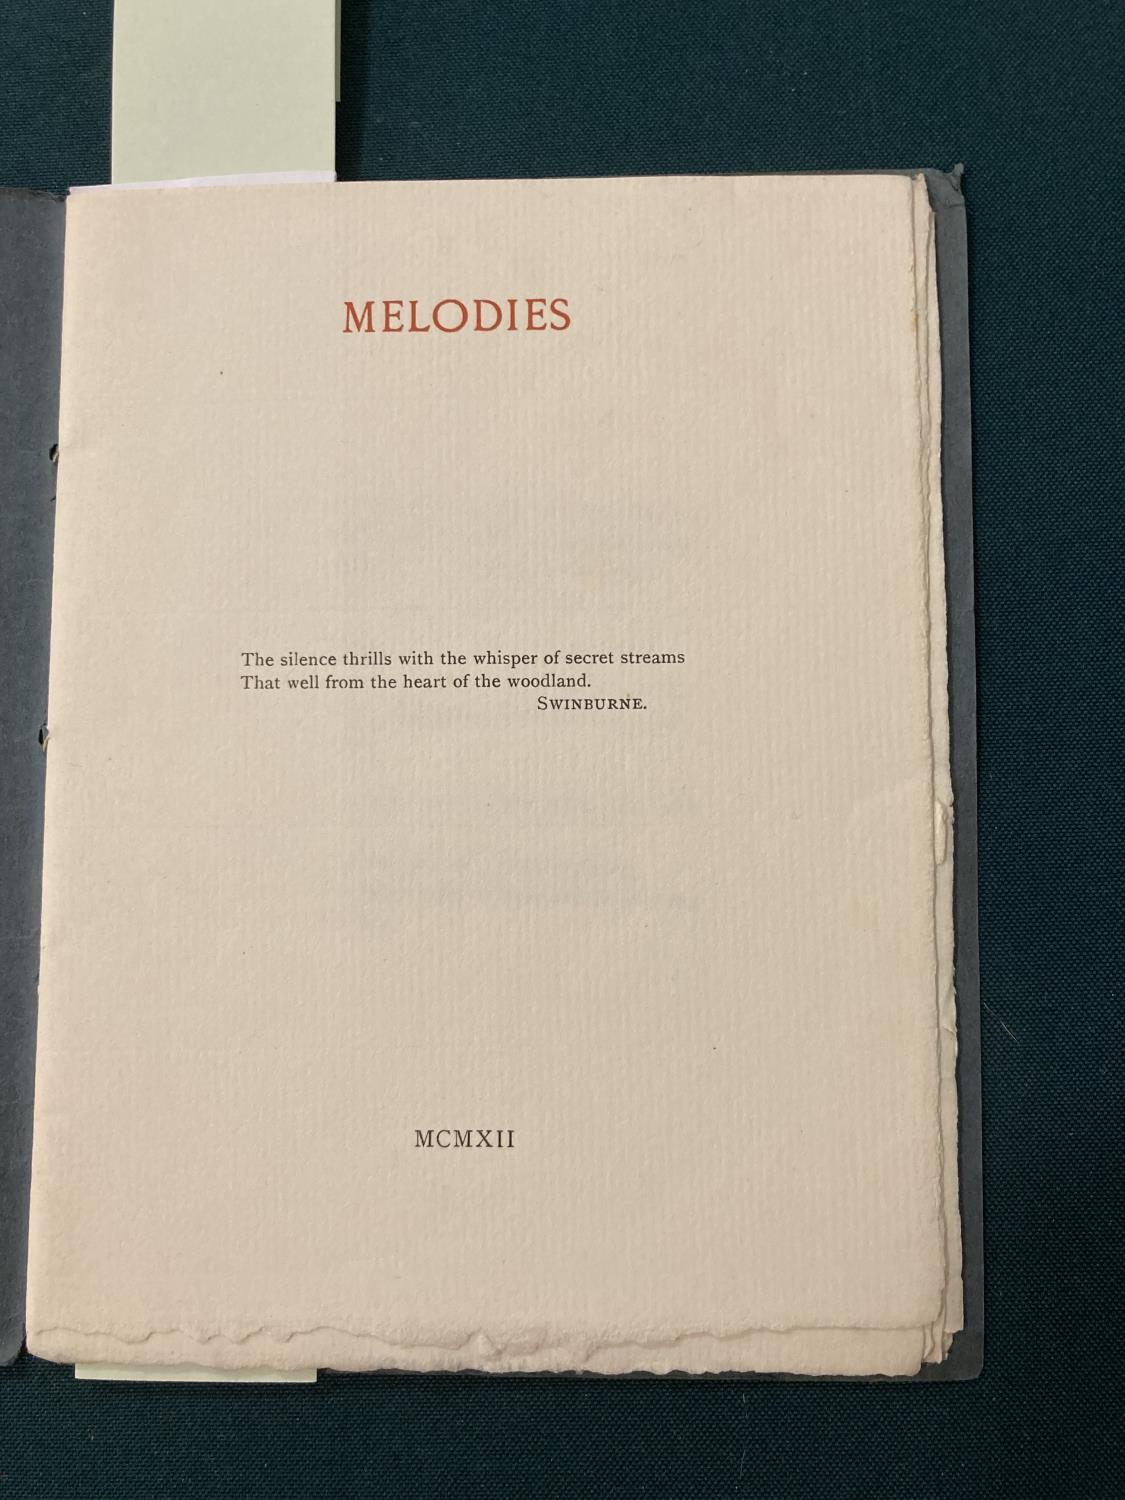 Sassoon, Siegfried. Melodies, one of 35 copies, original green printed wrappers, small stain on - Image 2 of 4